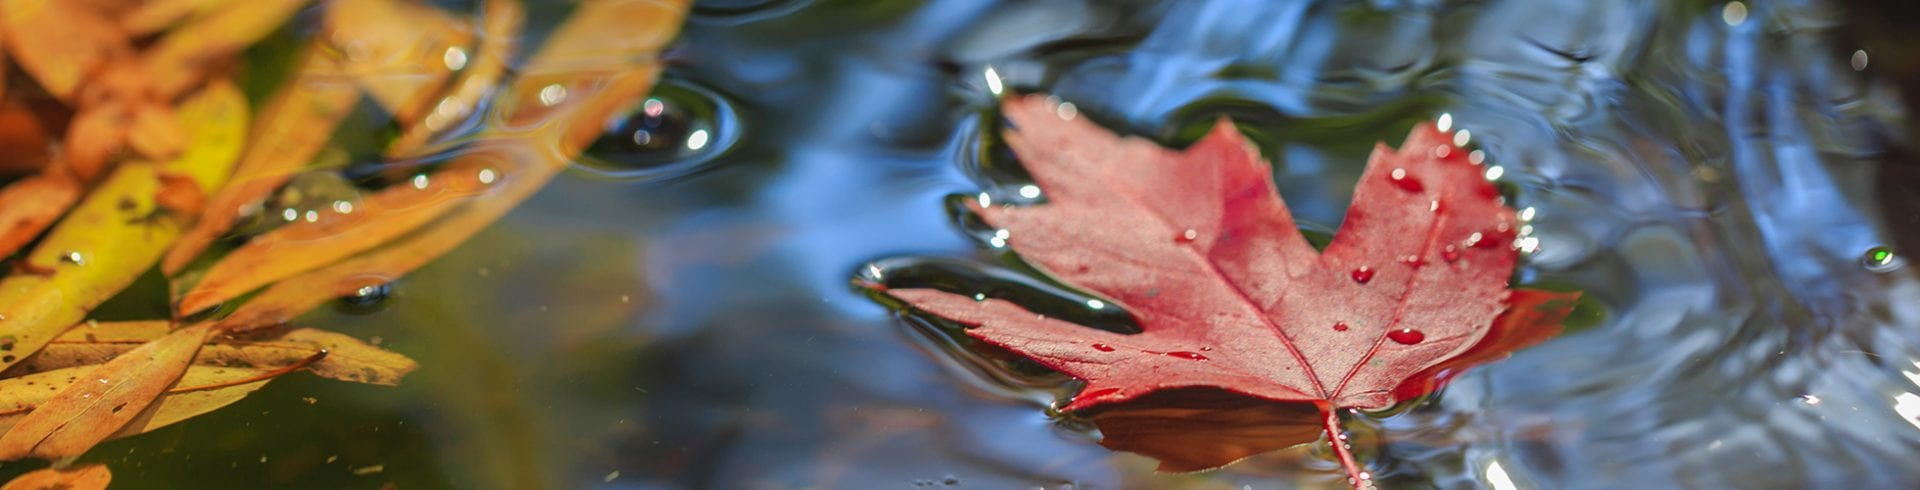 Tips & Tricks: Fall Leaves Spawn Mold Spores | Blog | Mold Off®